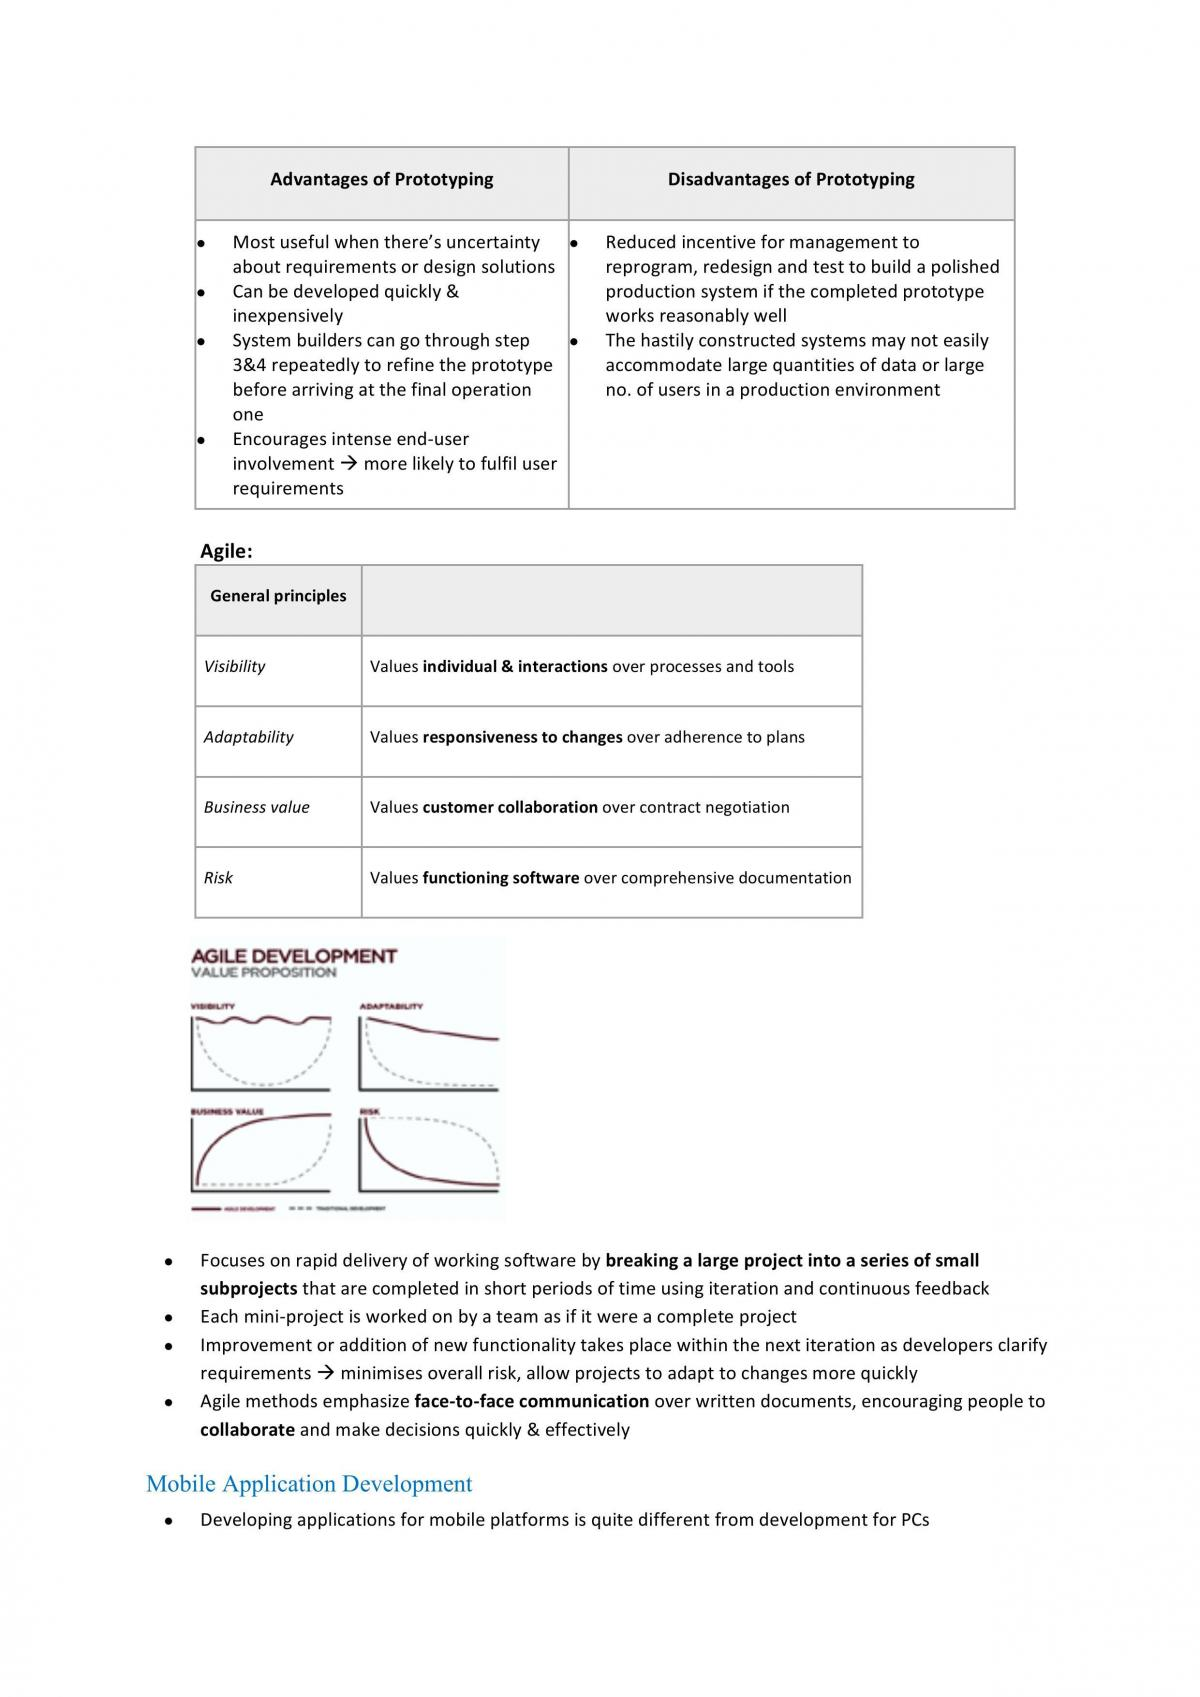 INFS 1602- Full Notes  - Page 20